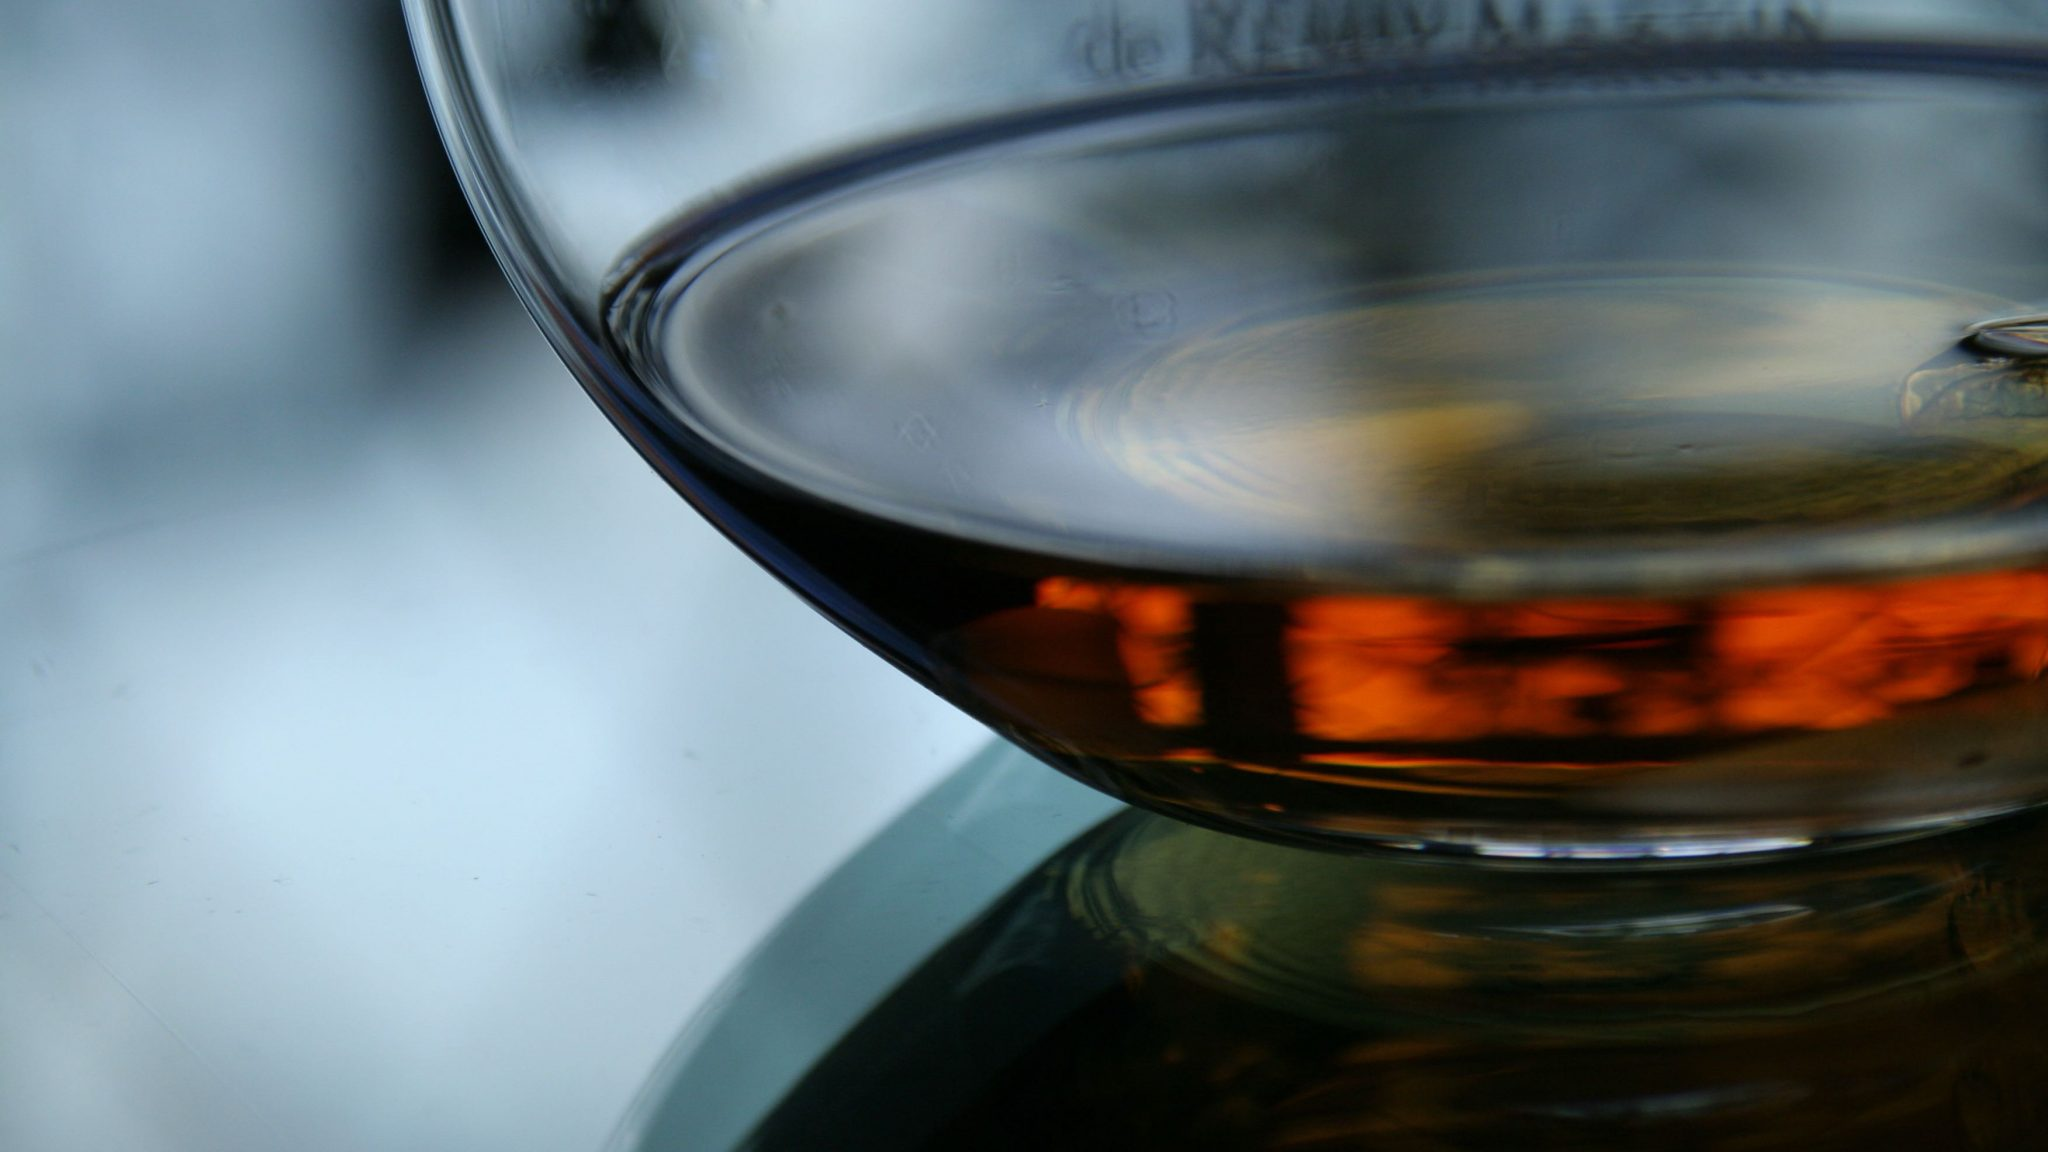 cognac-glass-closeup